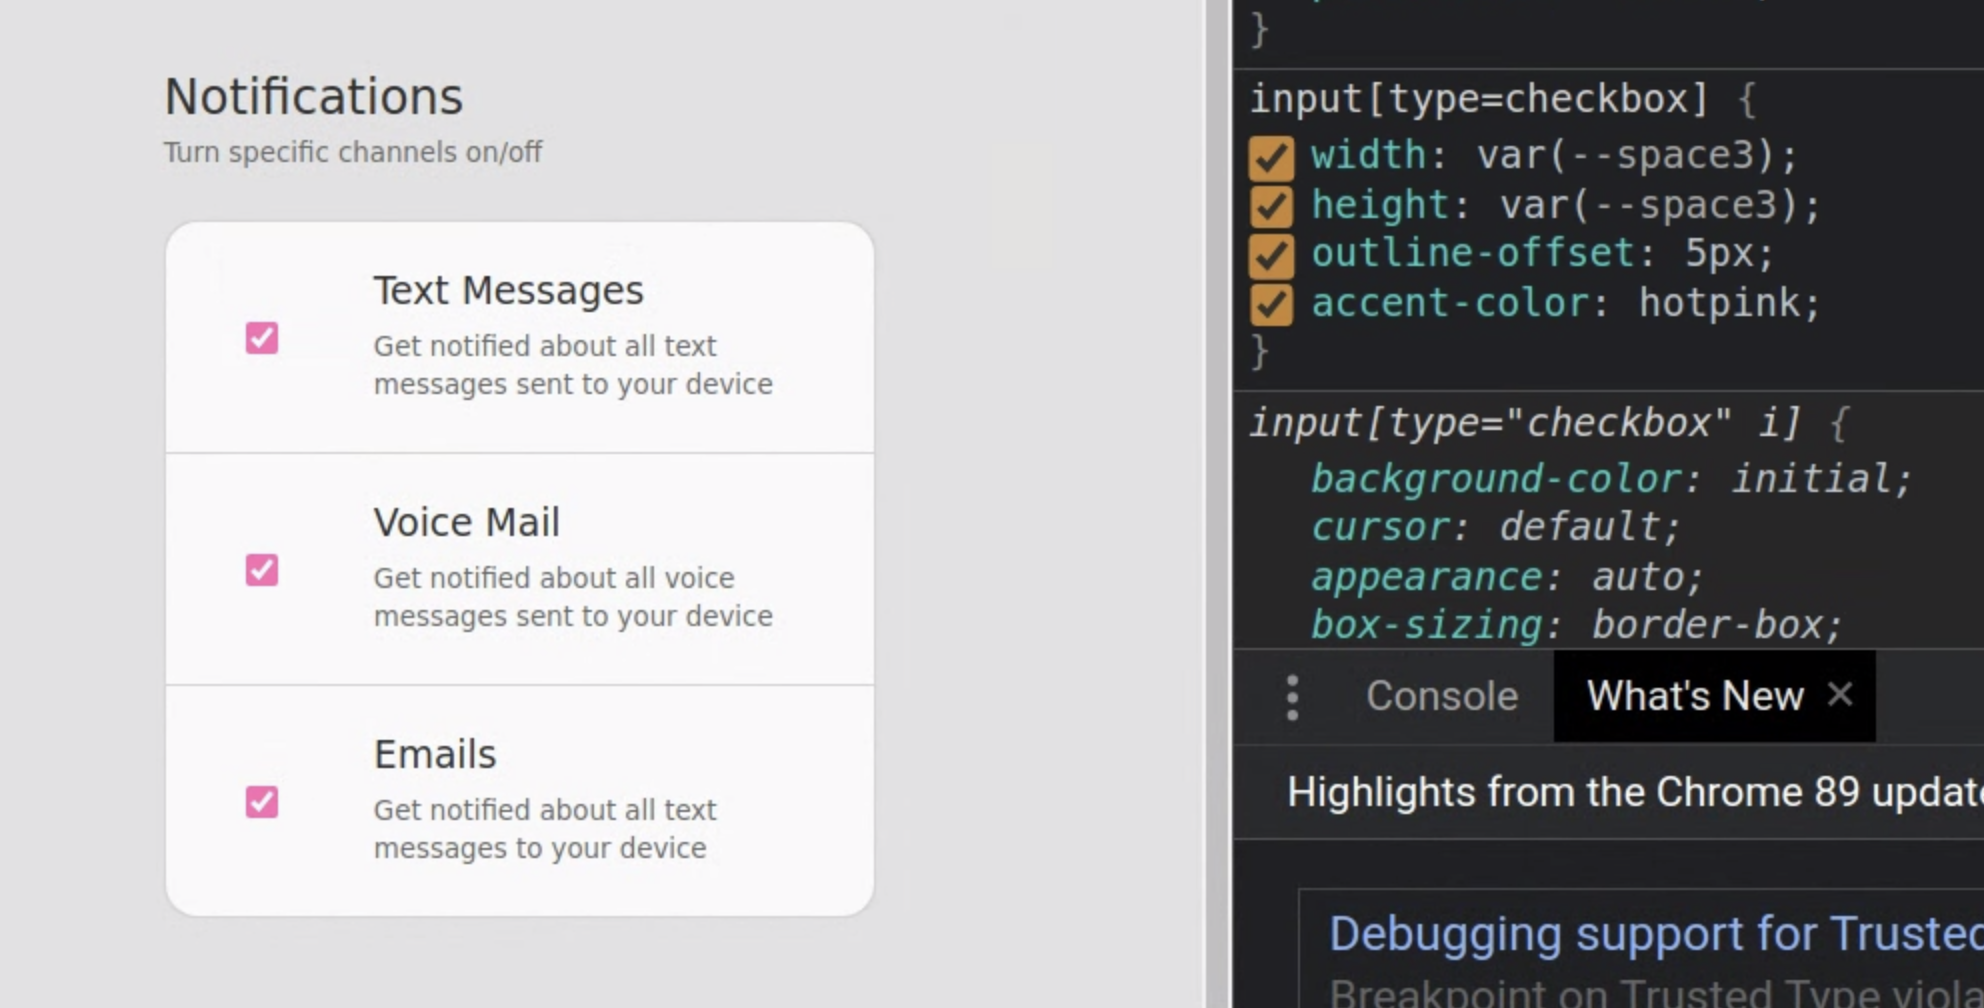 A screenshot from Chromium on Linux of pink checkboxes